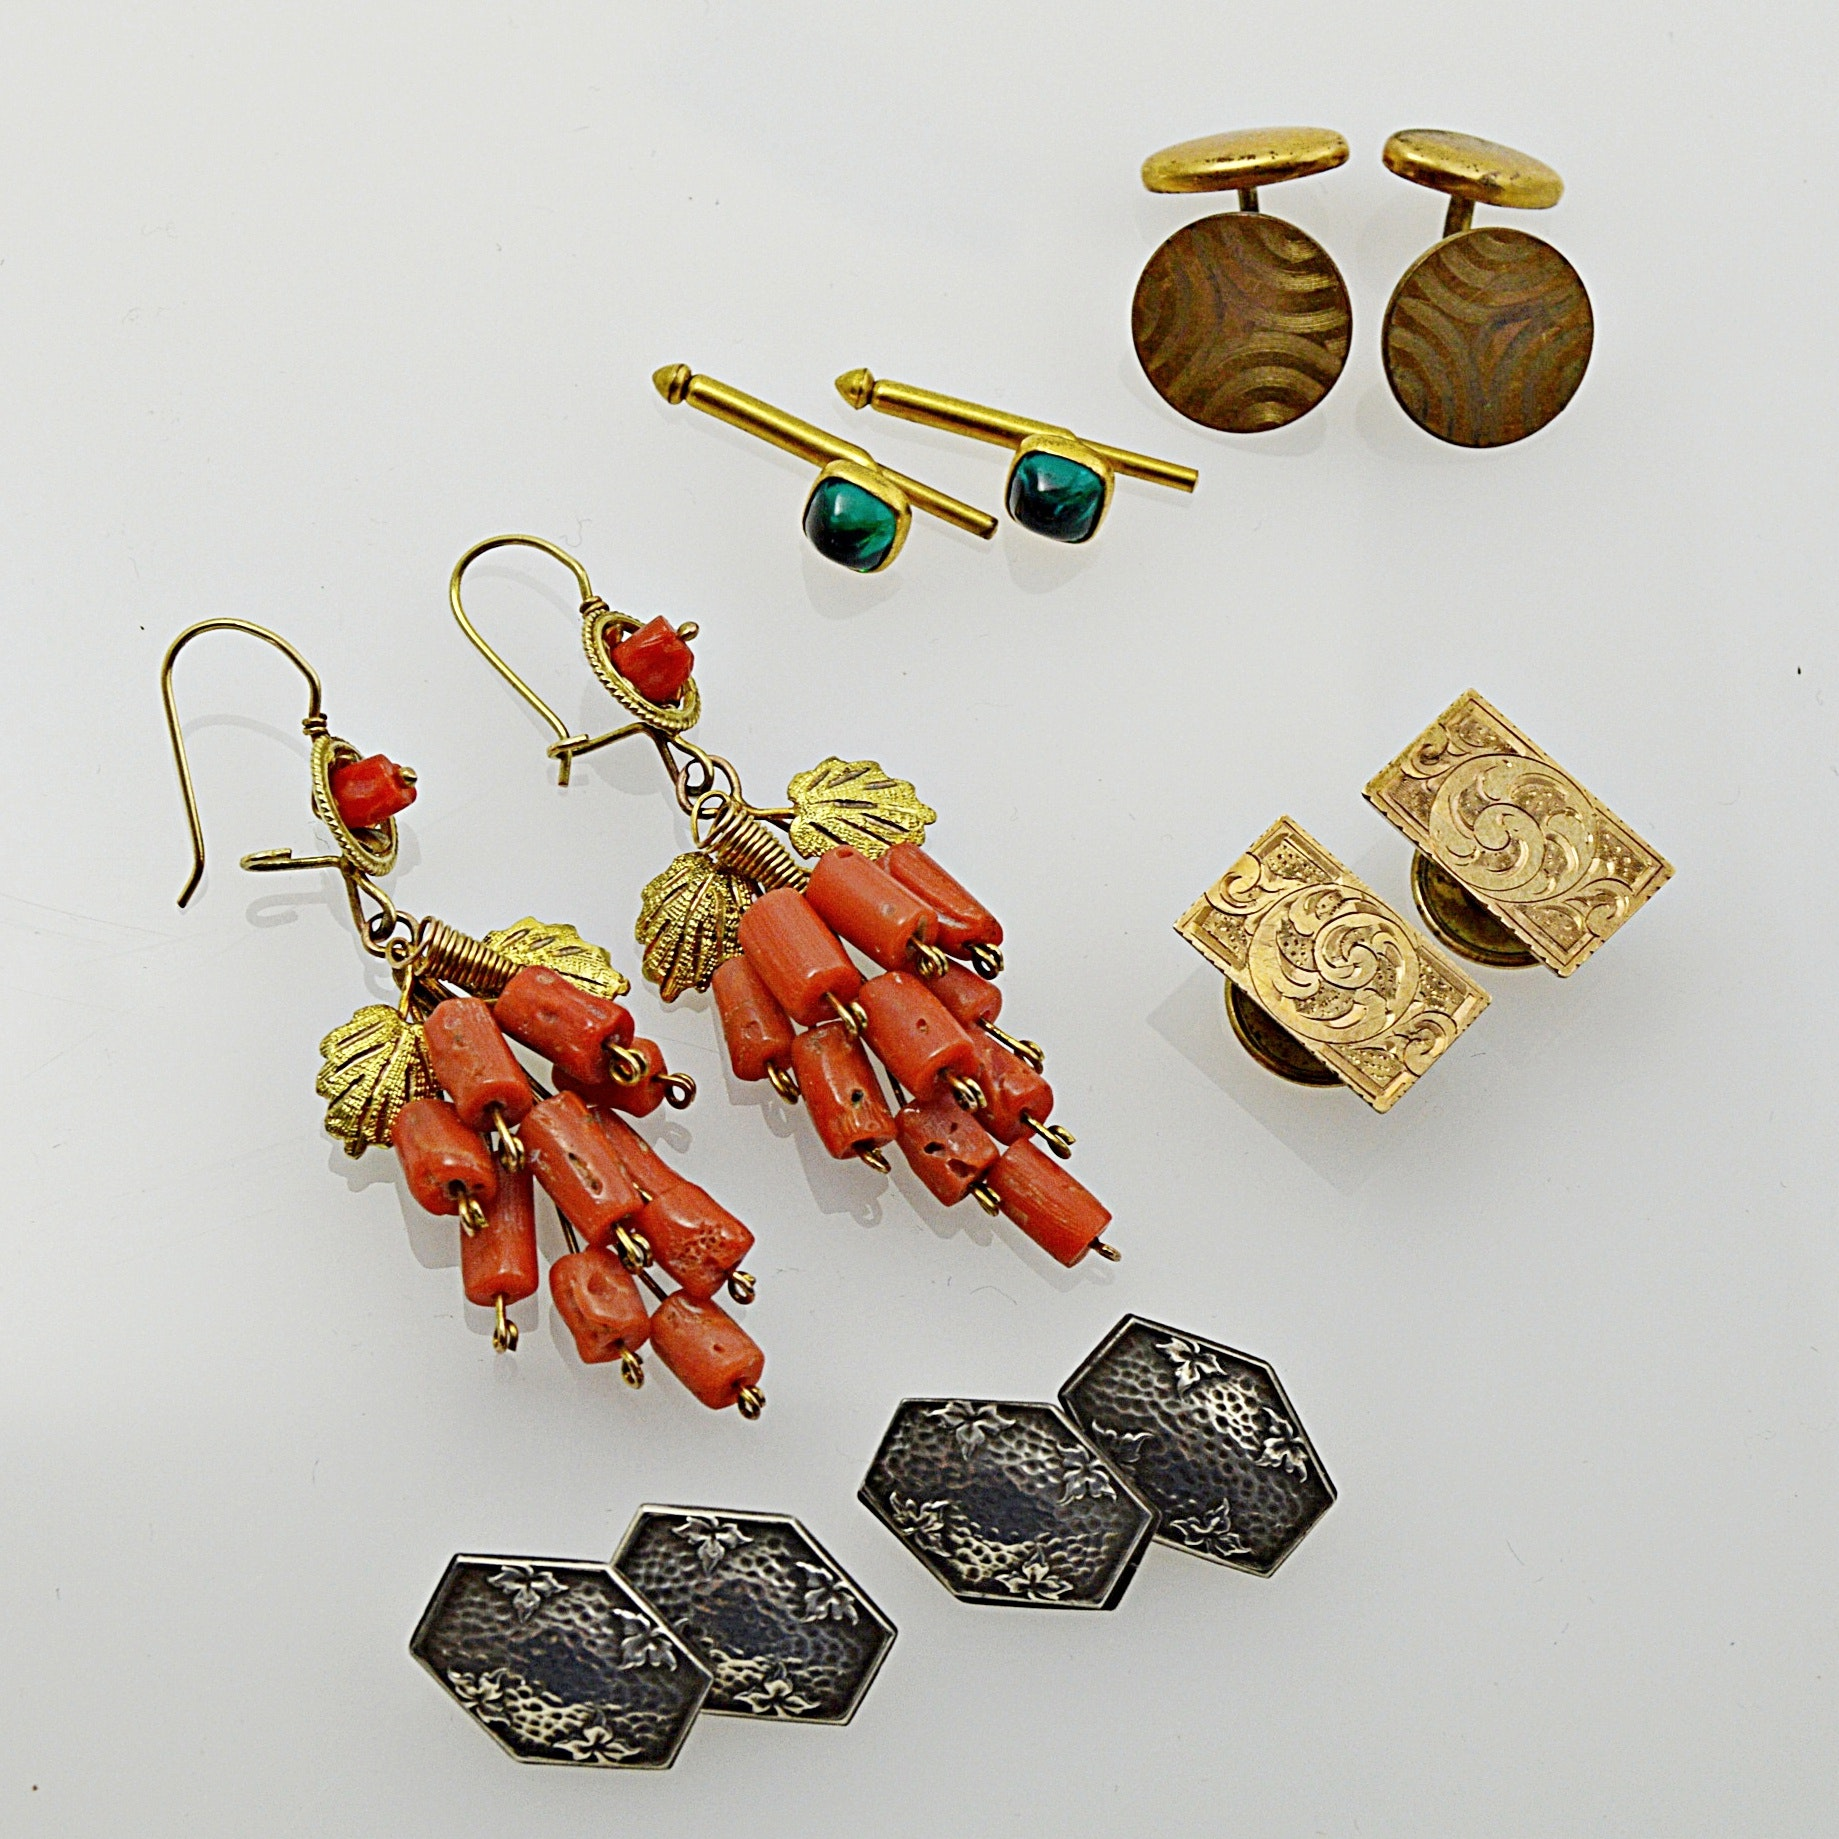 Vintage Jewelry with Gold-Filled Branch Coral Earrings and Sterling Cufflinks